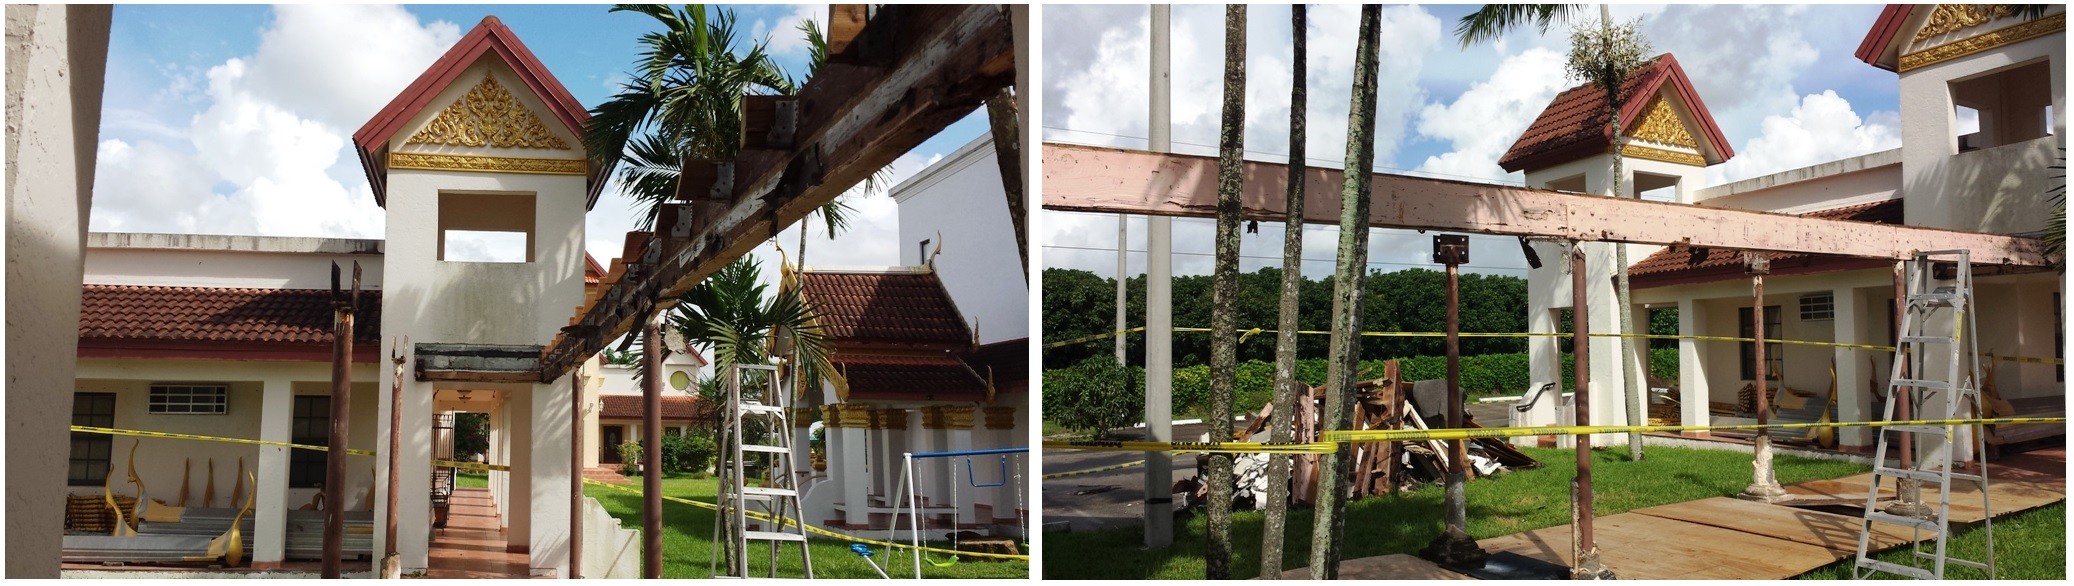 Walk way, Poles and Roof Repair